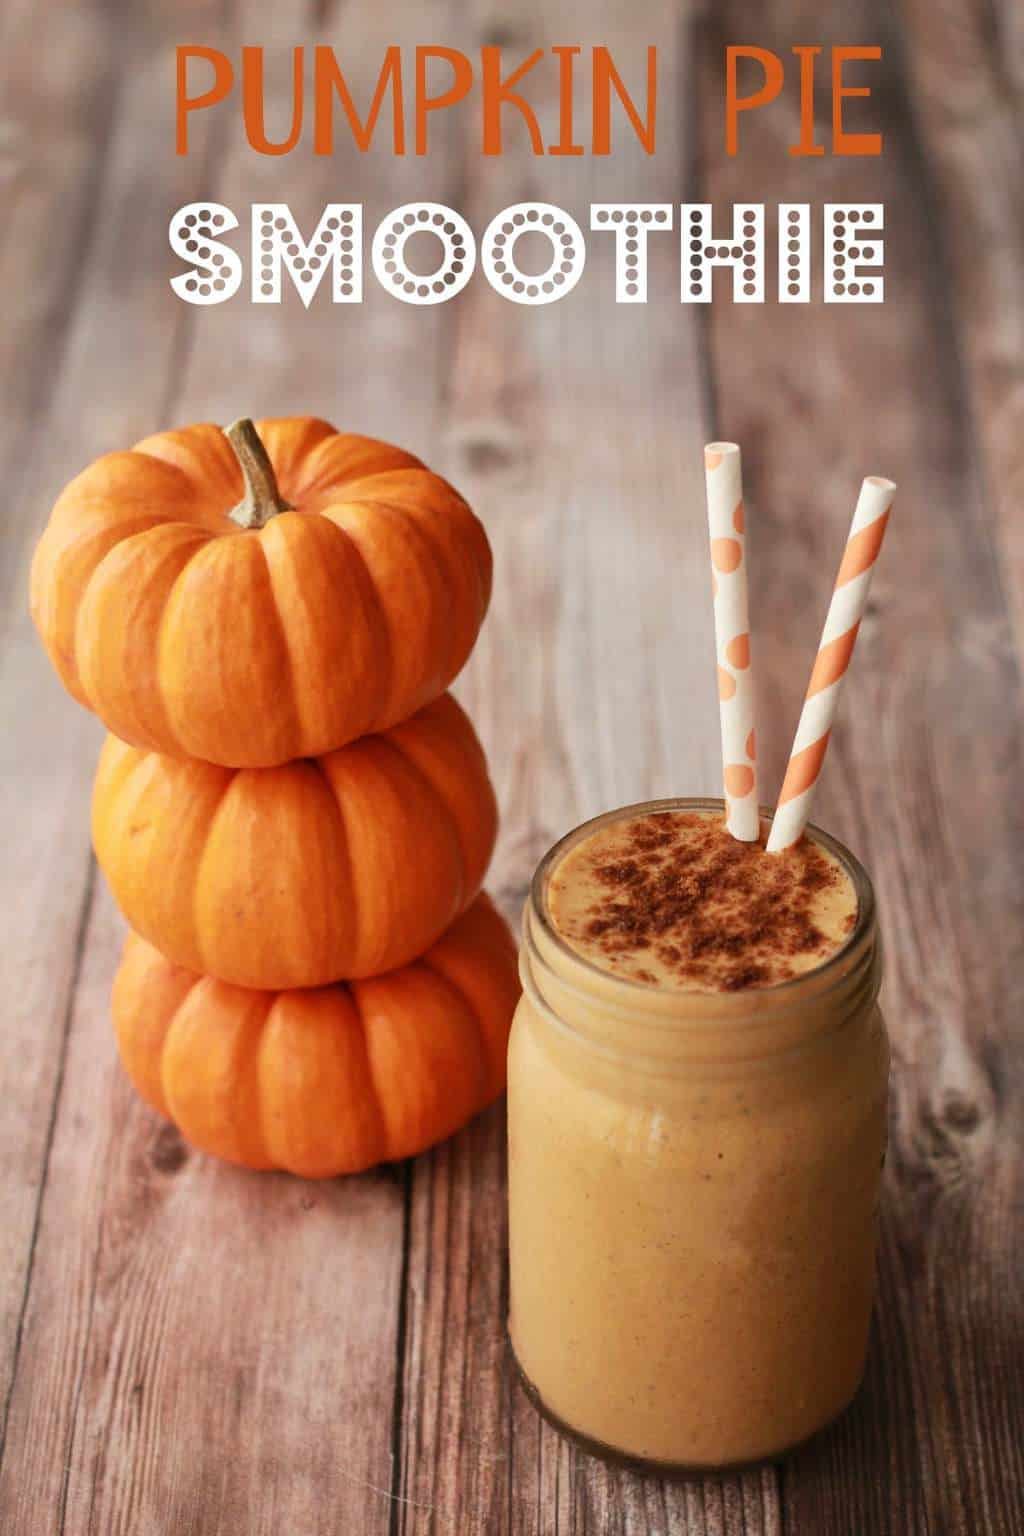 Creamy and smooth pumpkin pie smoothie. Vegan and gluten-free! #vegan #lovingitvegan #smoothie #pumpkinpiesmoothie #glutenfree #dairyfree